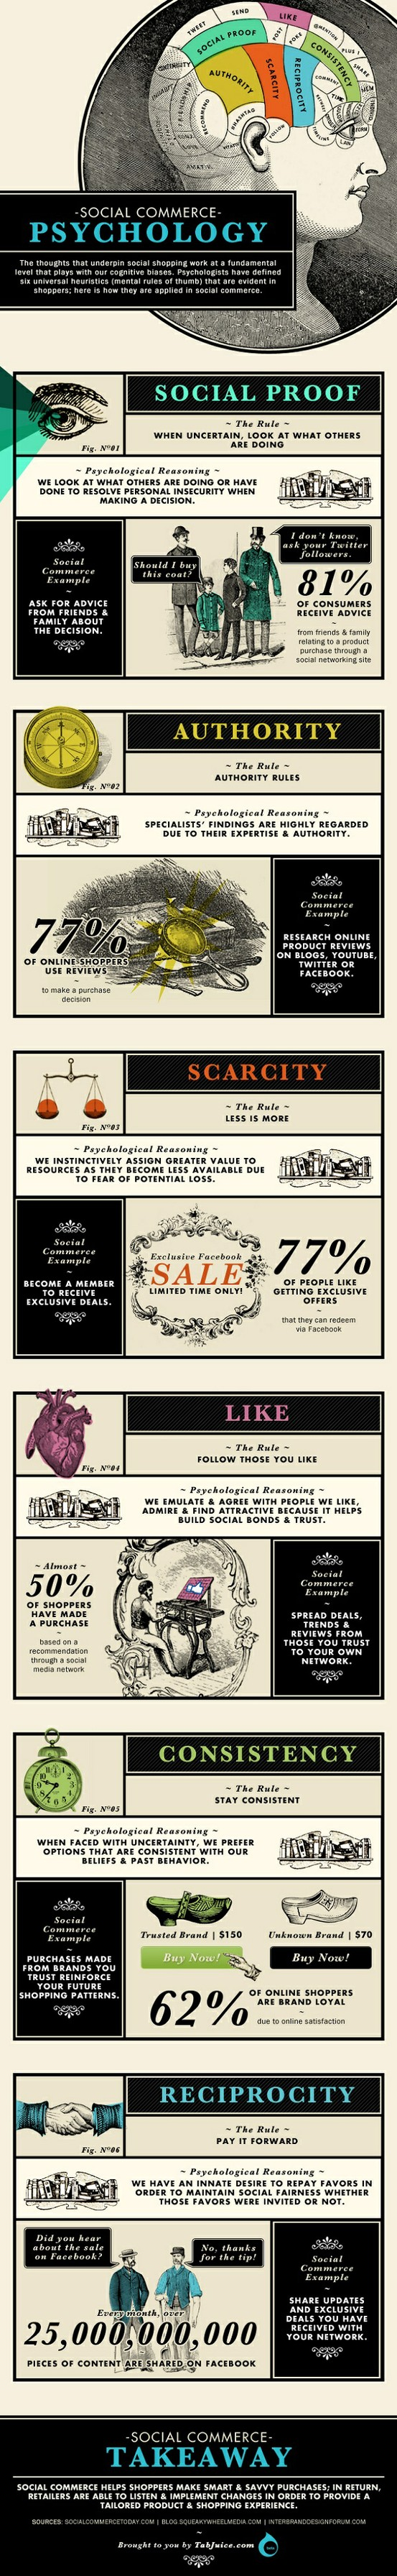 Social Commerce Psychology-infographic